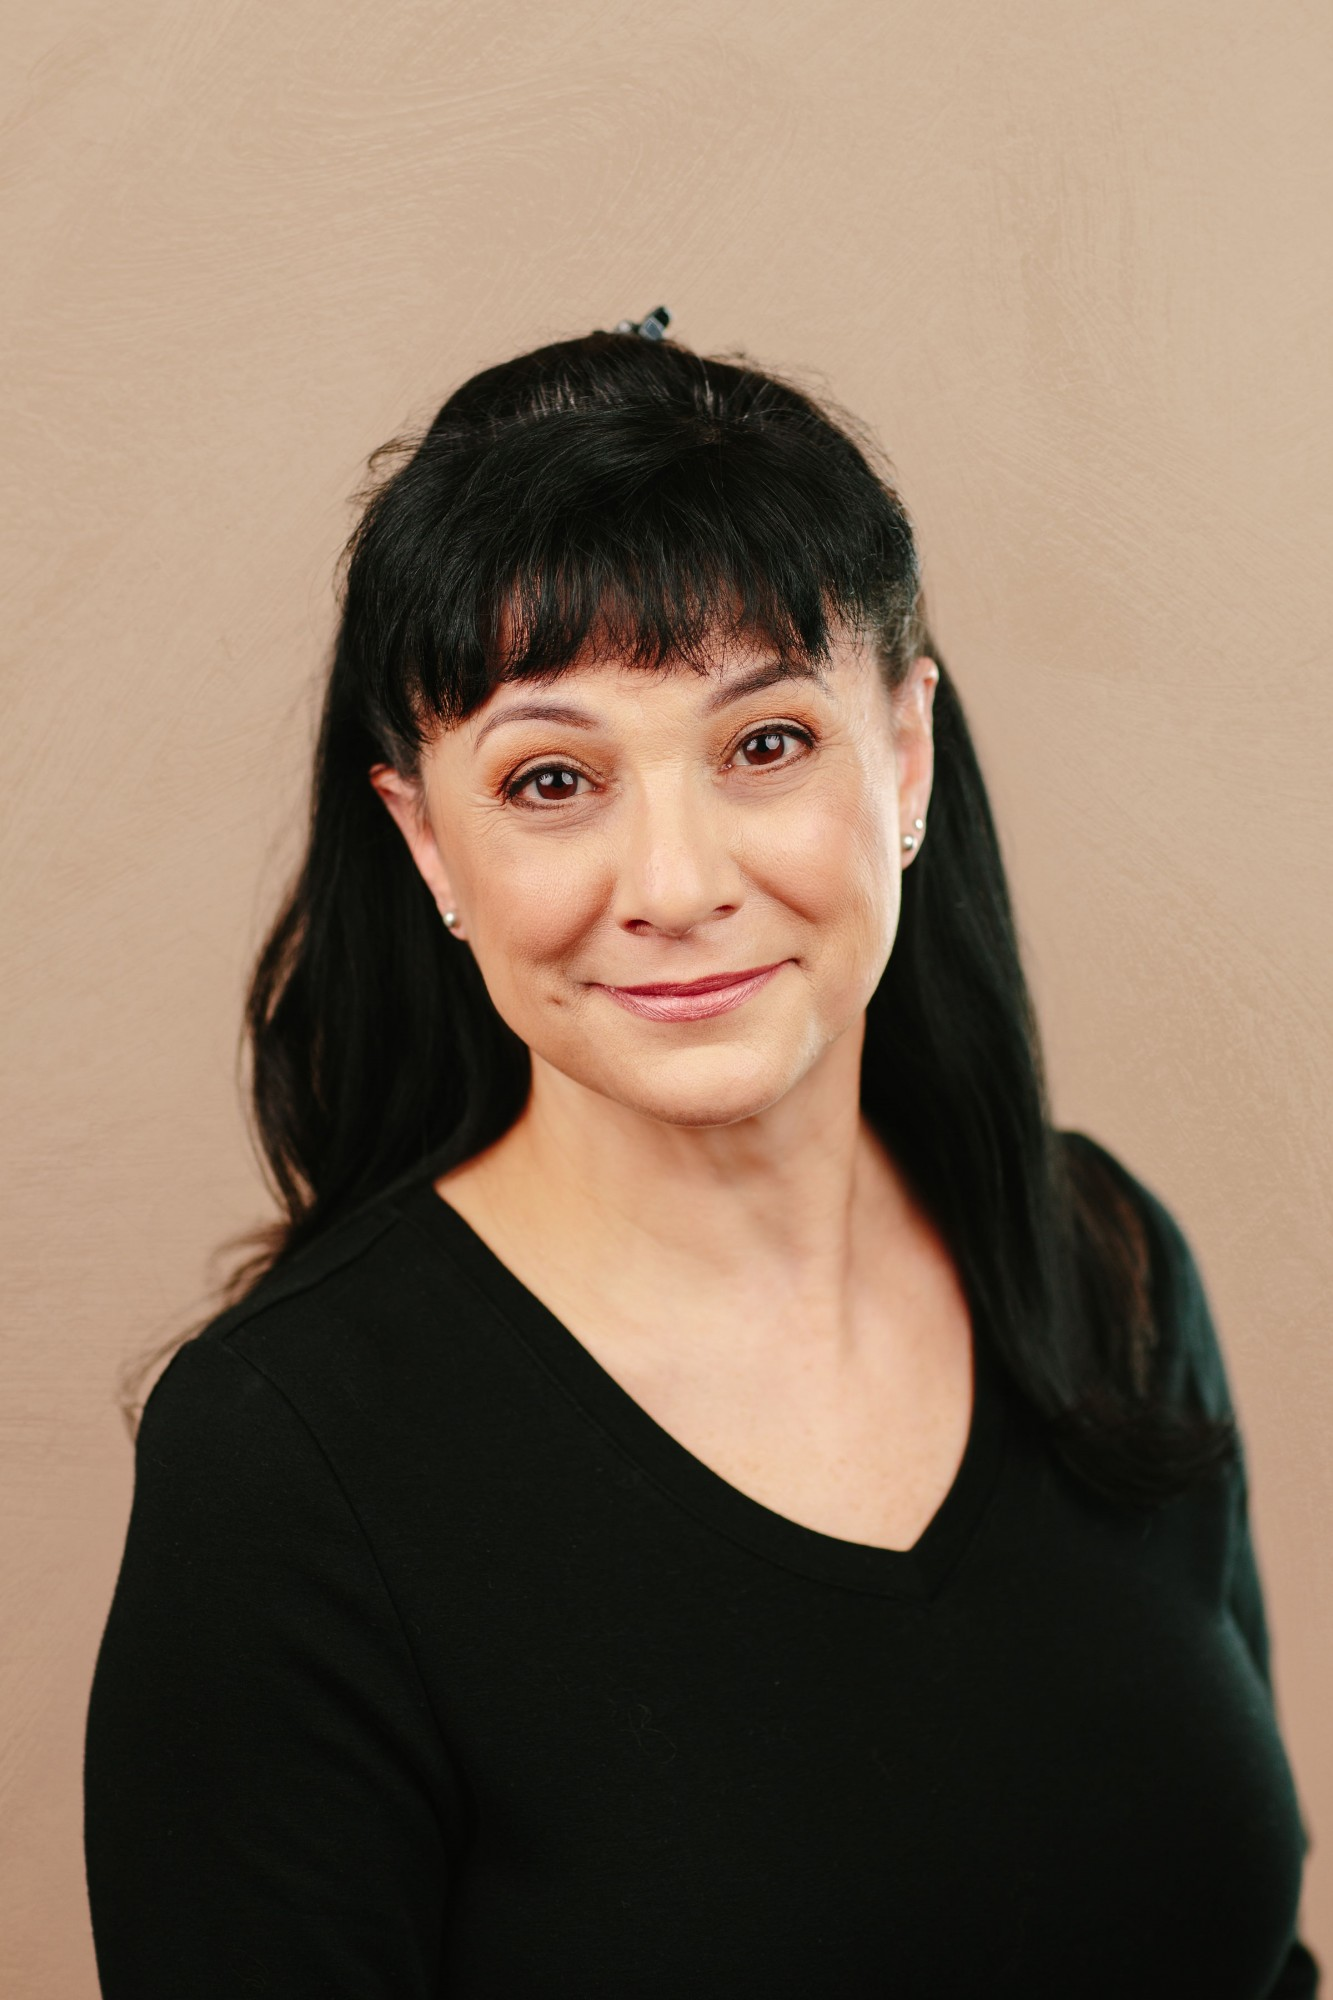 Cara Crossetti, Executive Director